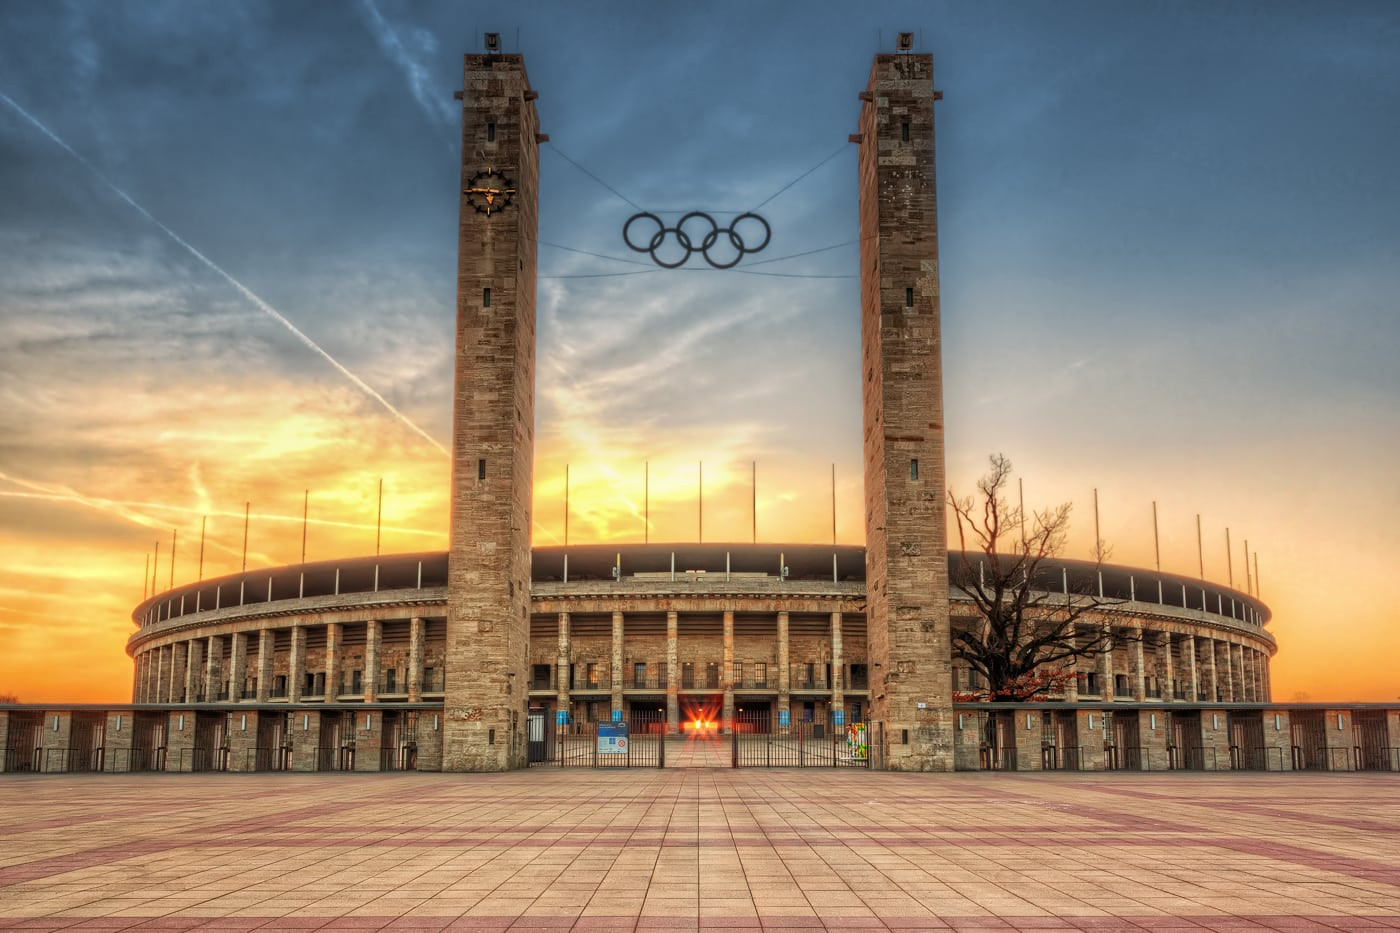 Olympic Stadium in Berlin